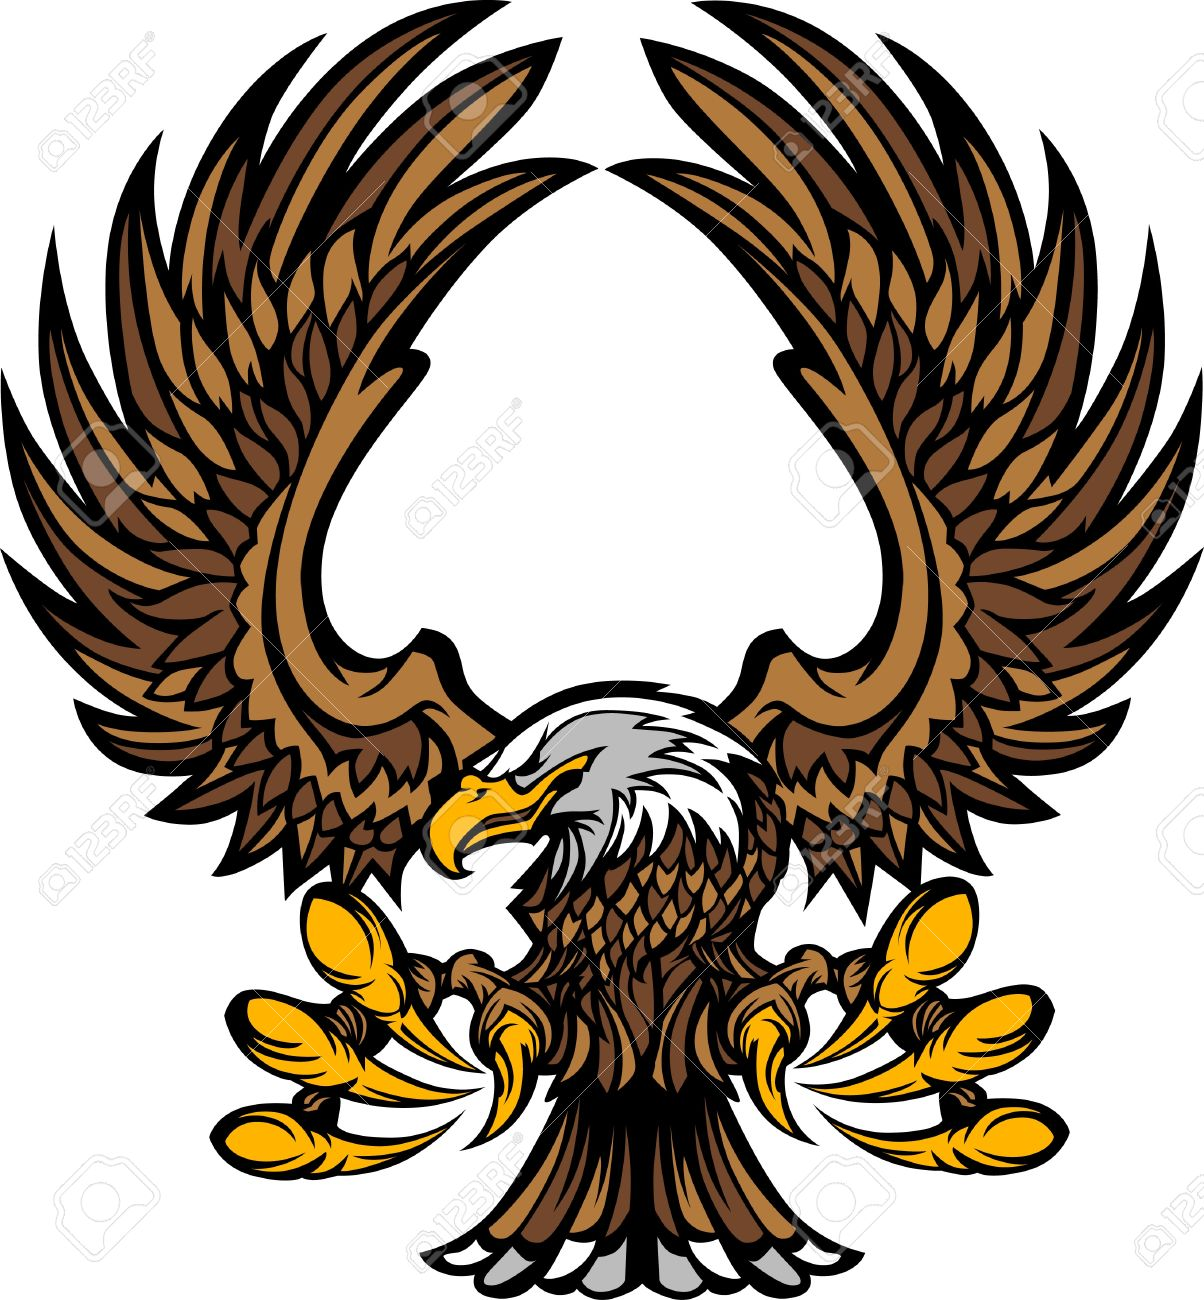 eagles  Eagle Wings and Claws  Eagles Logo